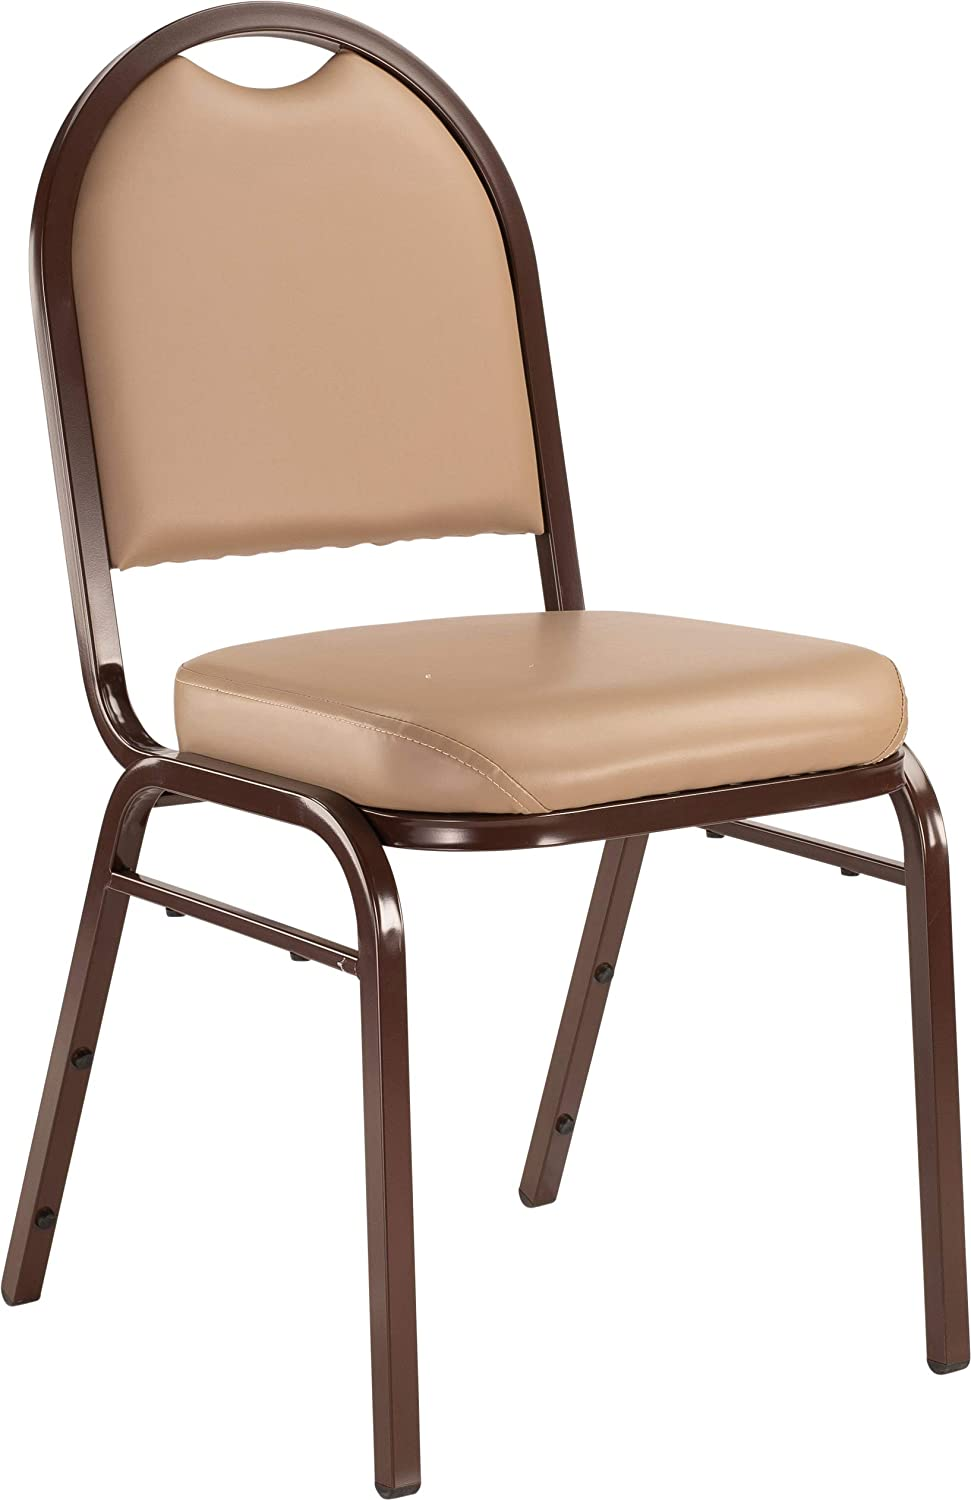 """NPS 9201-M Vinyl-upholstered Dome Back Stack Chair with Steel Mocha Frame, 300-lb Weight Capacity, 18"""" Length x 20"""" Width x 34"""" Height, Beige"""